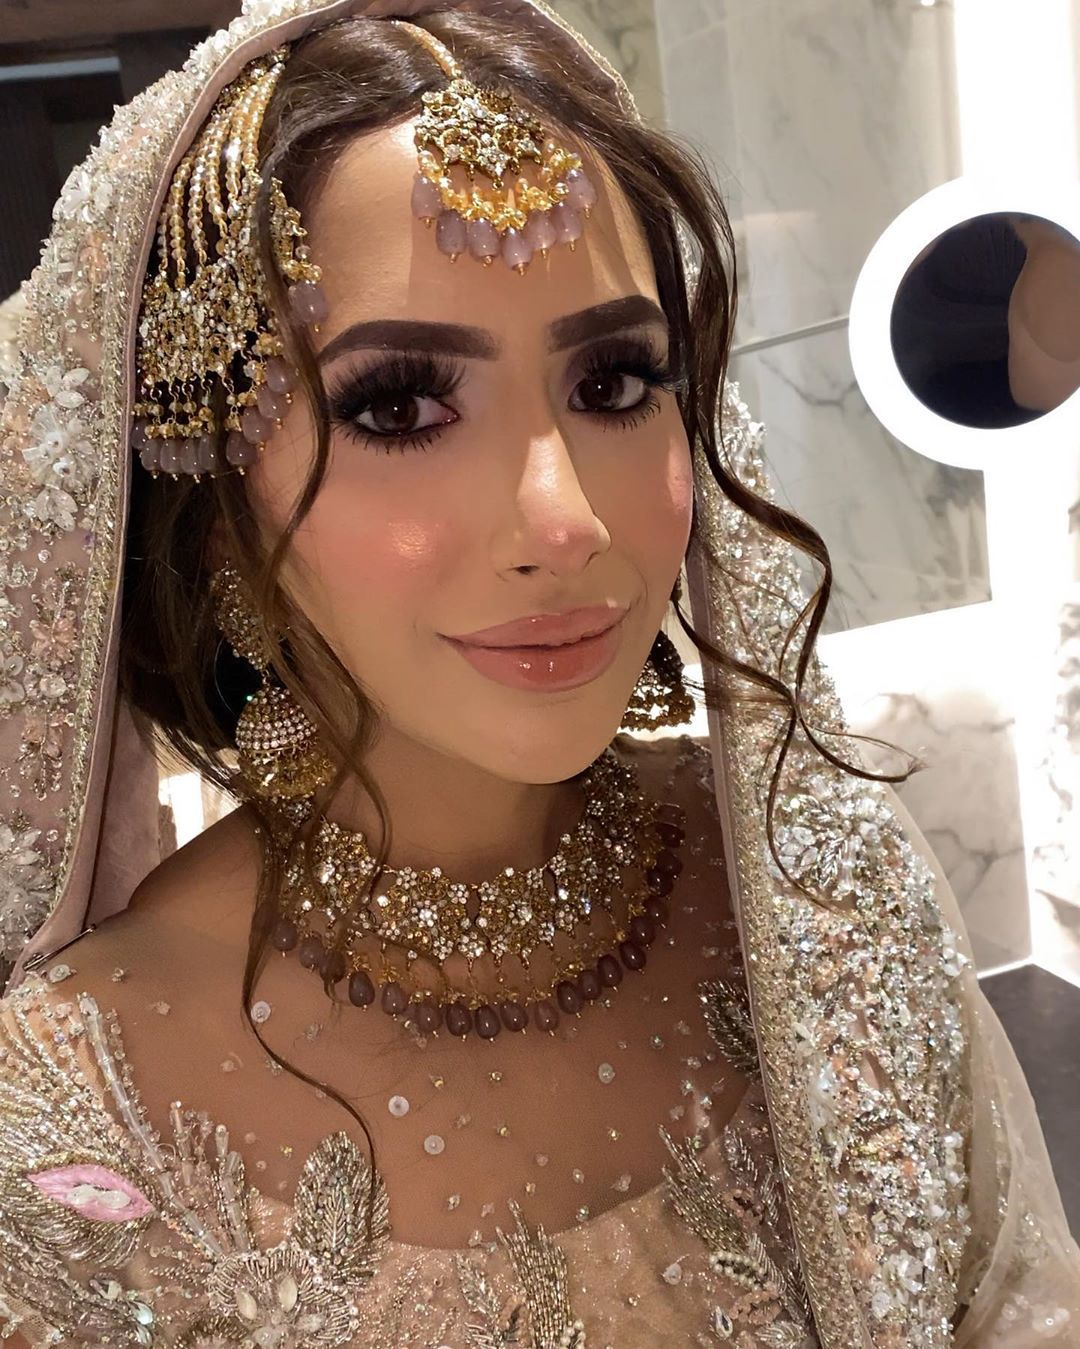 S H A N E E Q On Instagram And Some Pics Natural And Artificial Light Pakistani Bridal Hairstyles Desi Bridal Makeup Pakistani Bridal Makeup Hairstyles